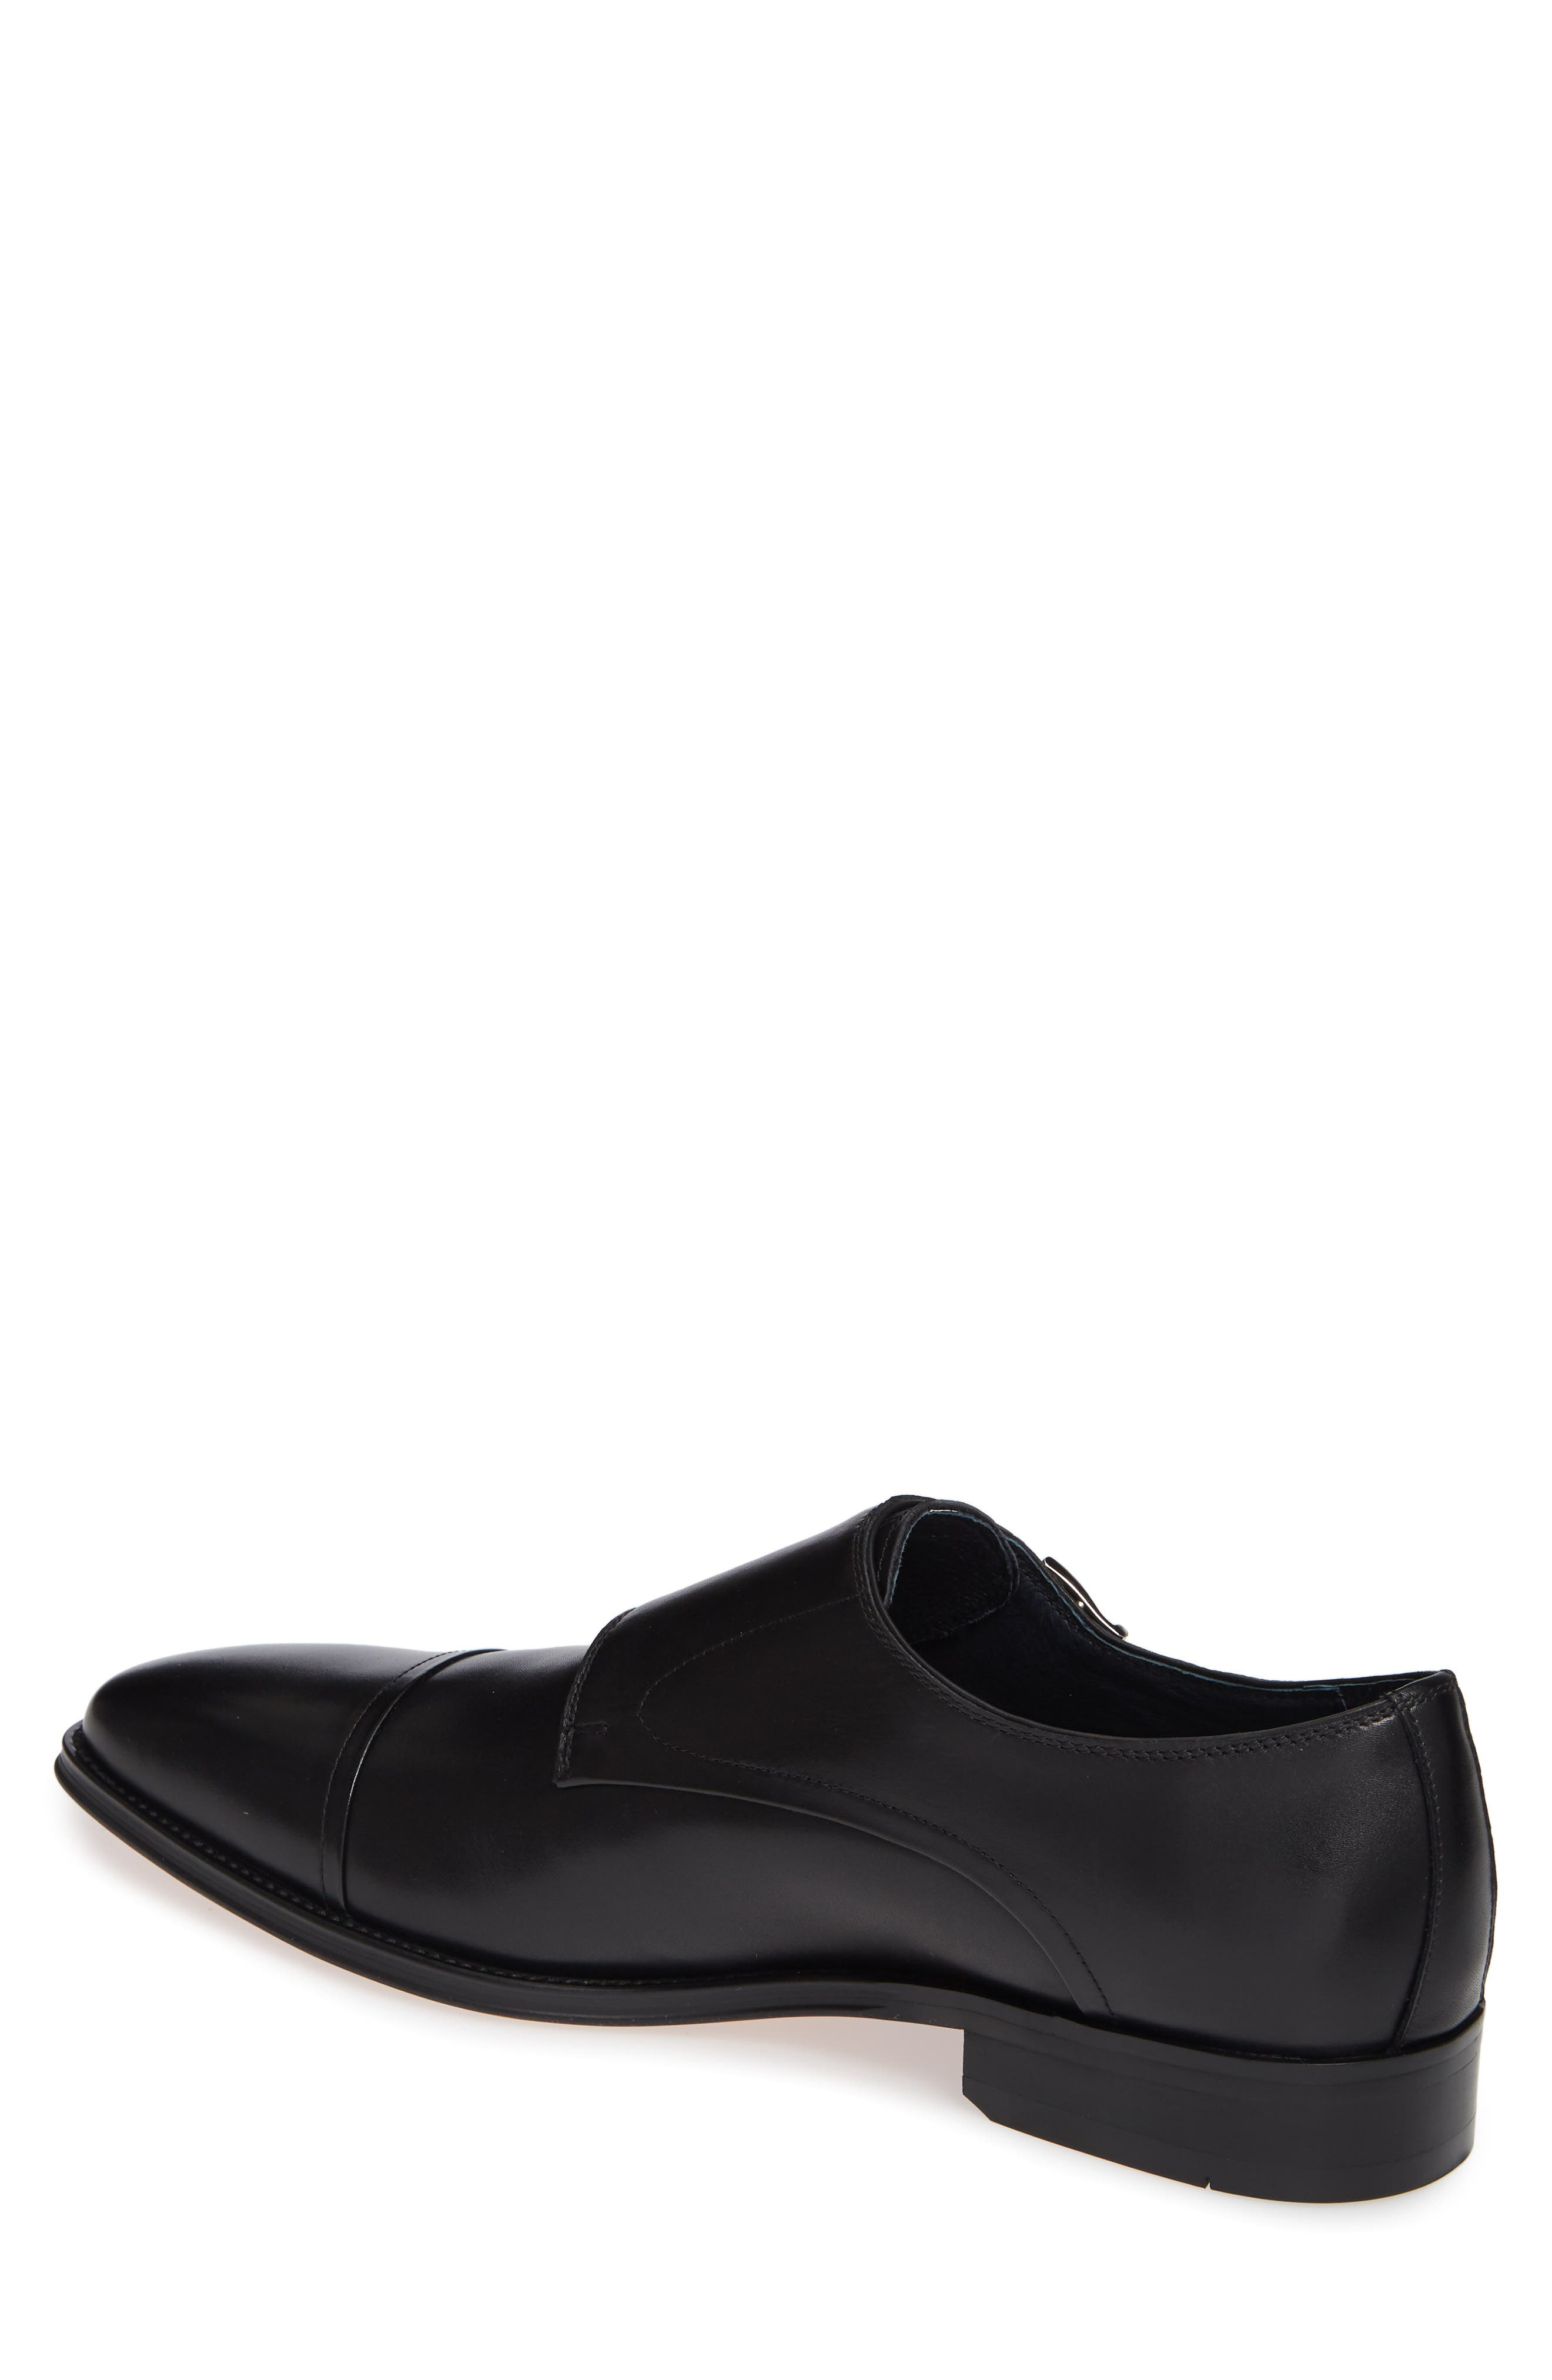 Mario Double Monk Strap Shoe,                             Alternate thumbnail 2, color,                             BLACK LEATHER